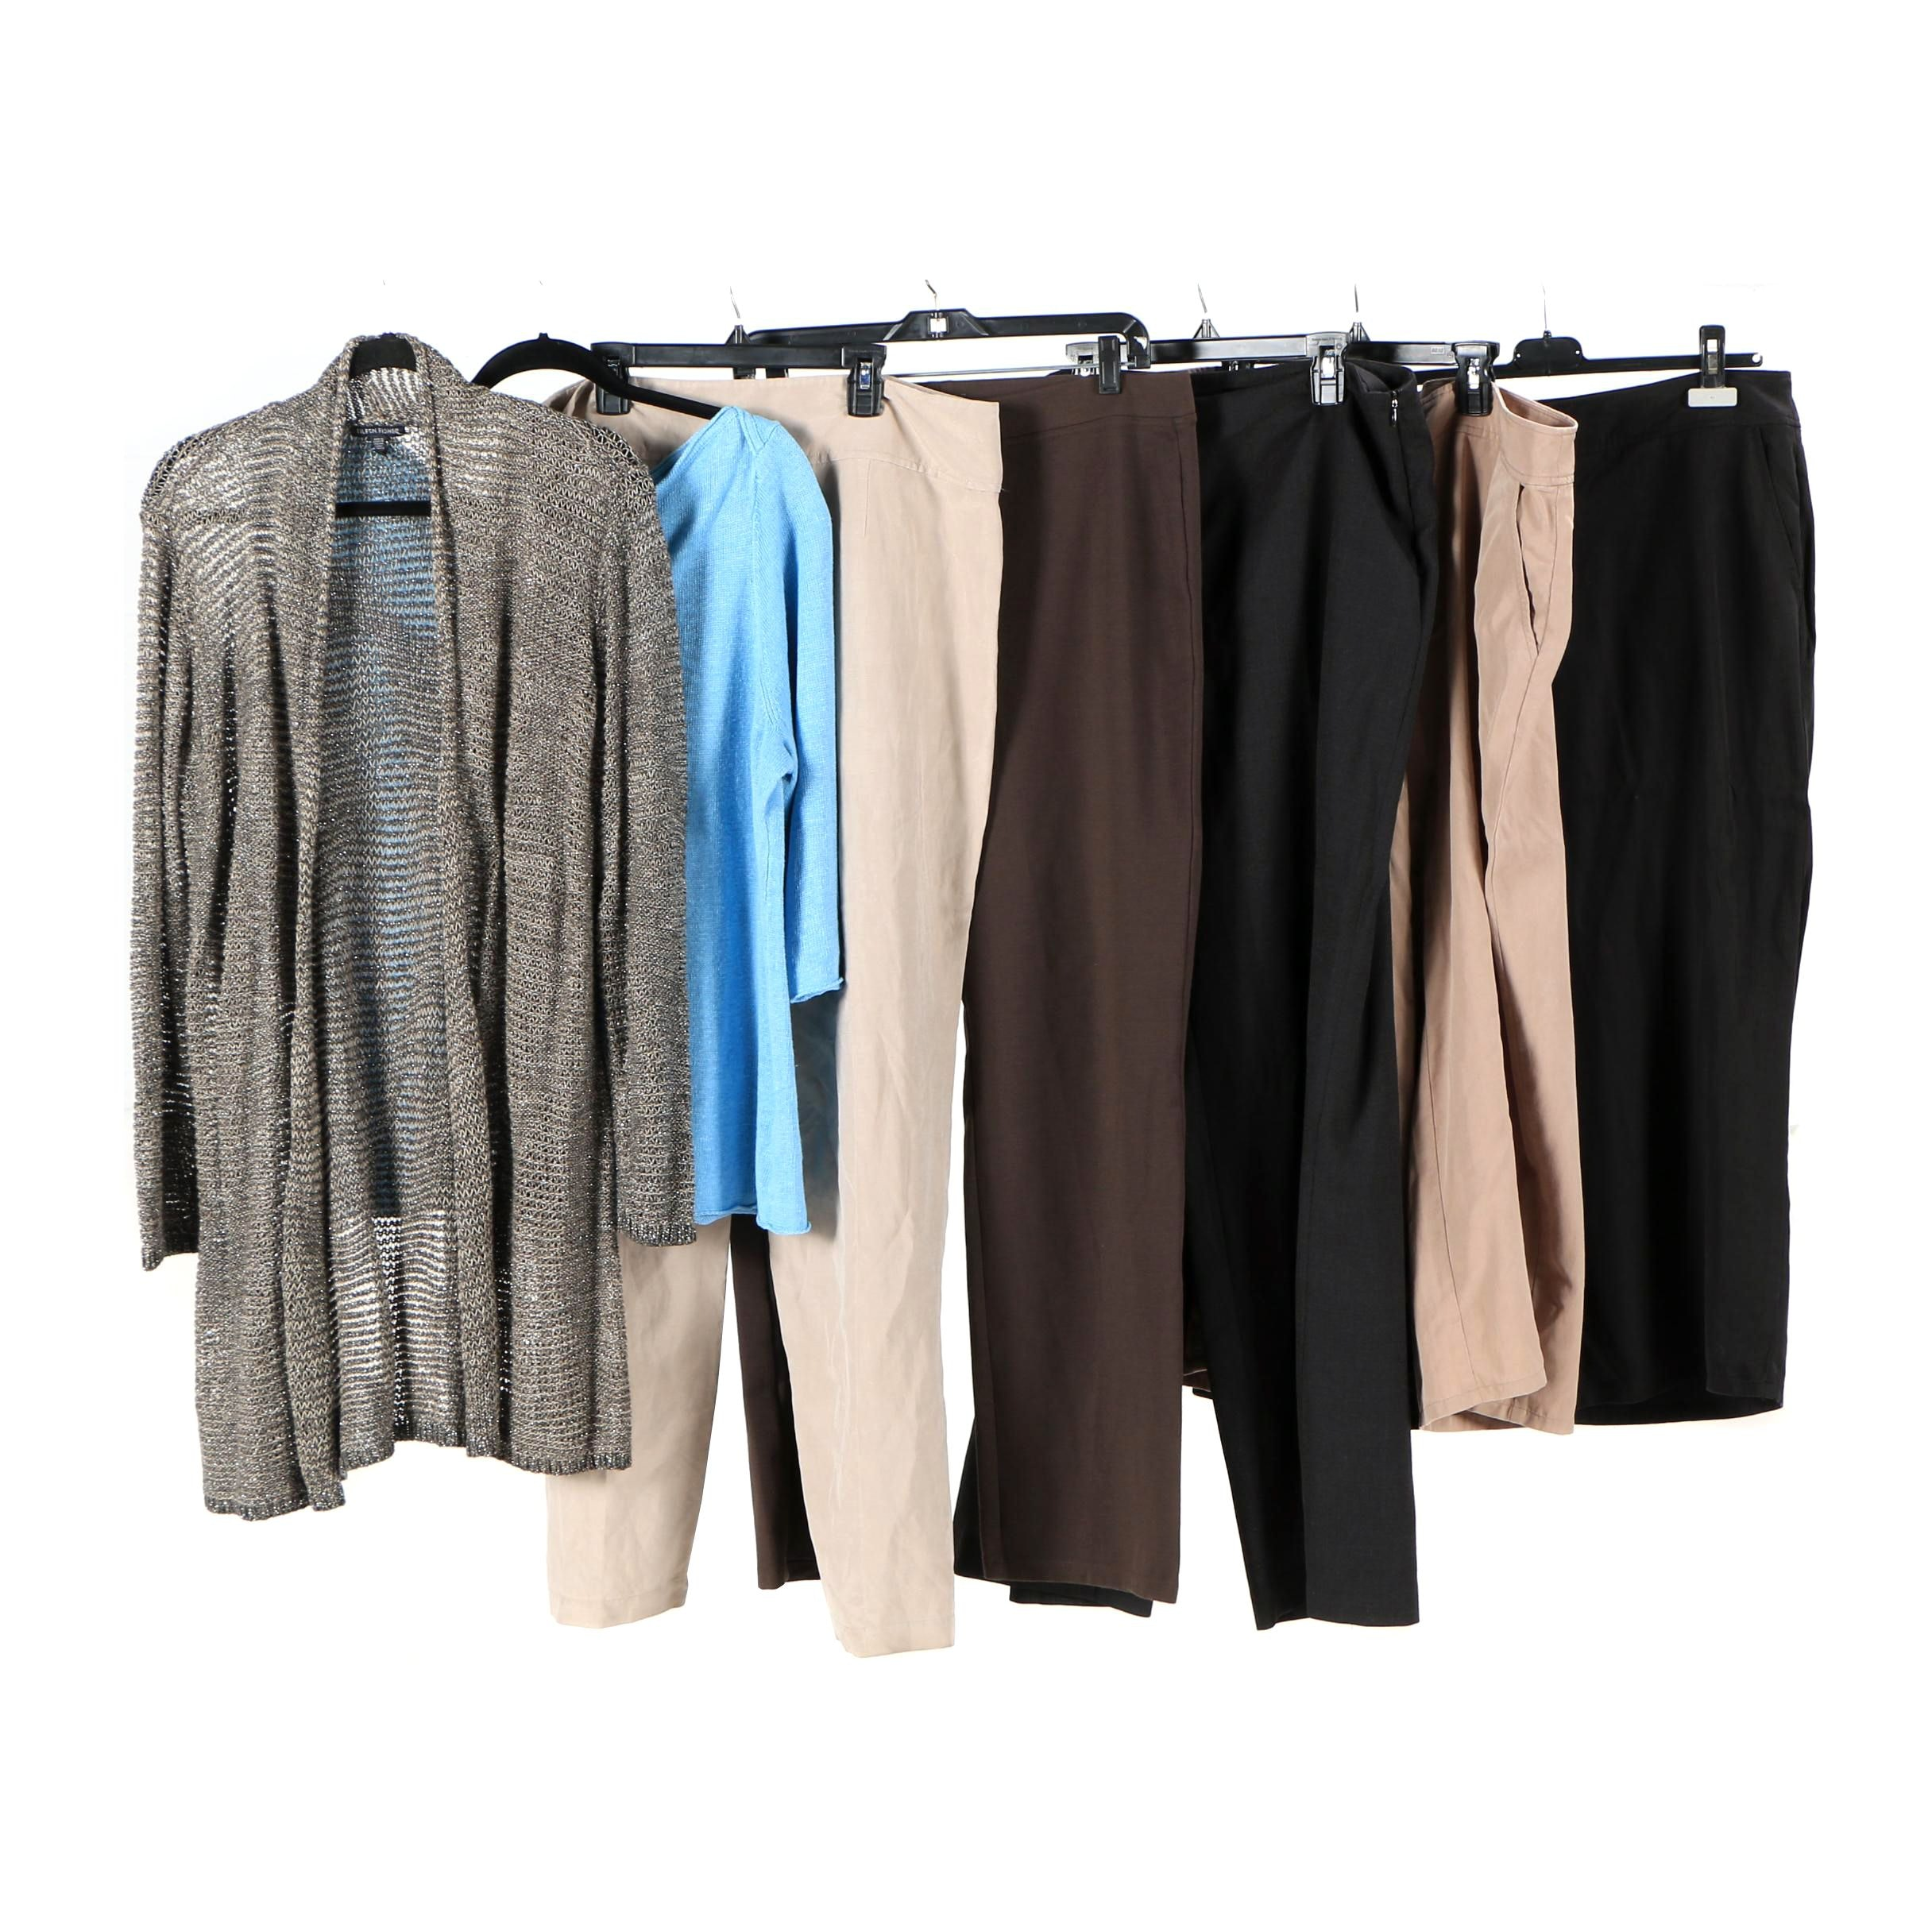 Eileen Fisher Pants and Sweaters